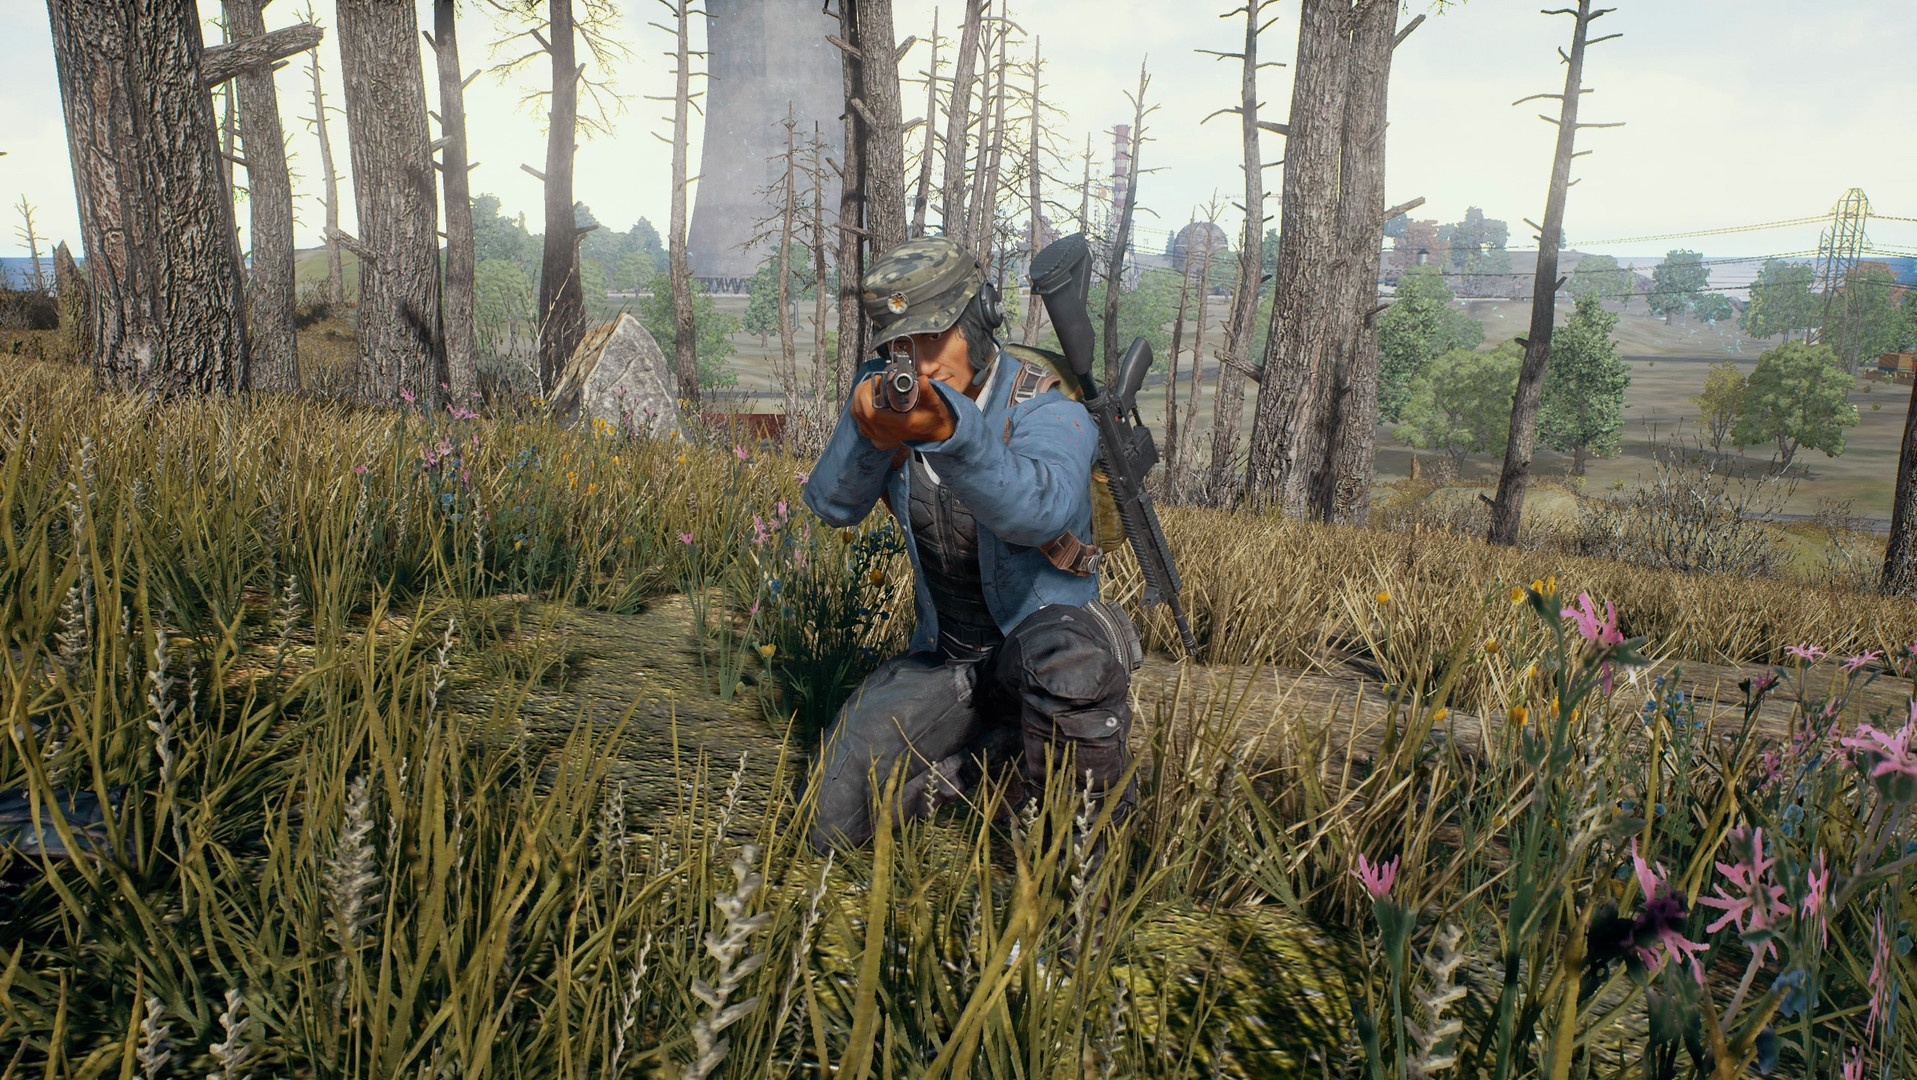 BUY PlayerUnknown's Battlegrounds Steam CD KEY